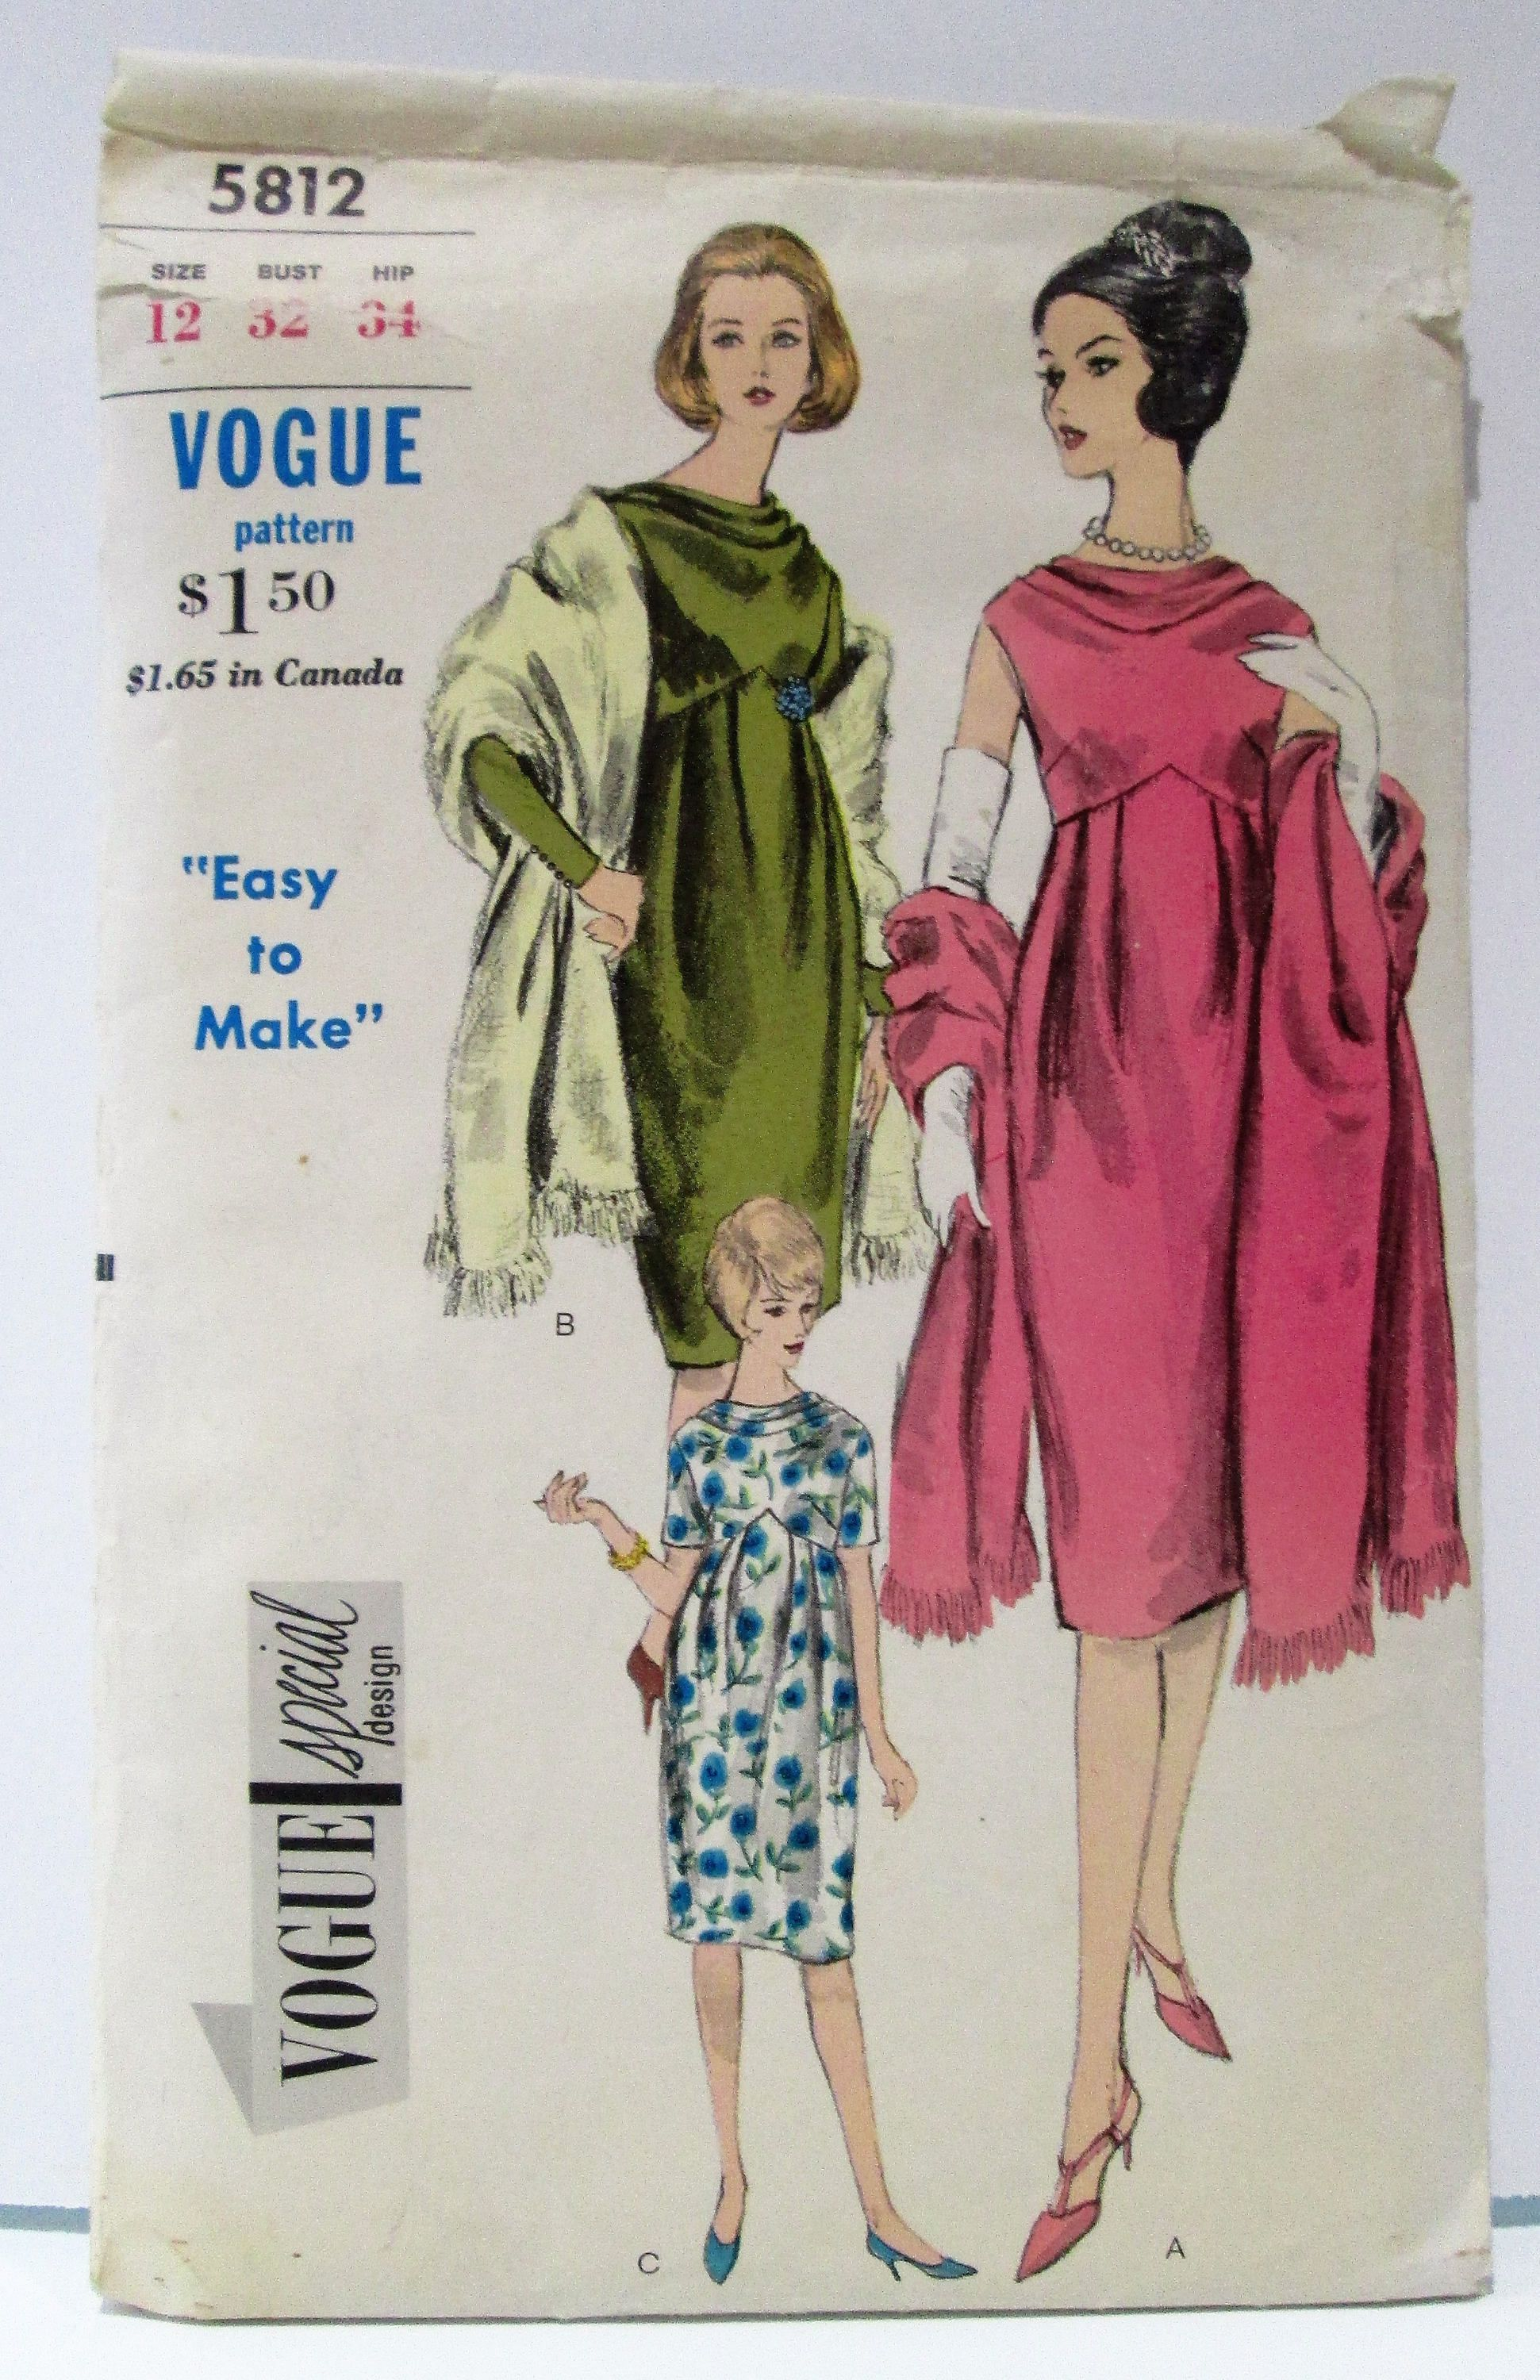 ba419ca32abaf Vintage Sewing Pattern Vogue 5812 - maternity evening dress with draped  neckline